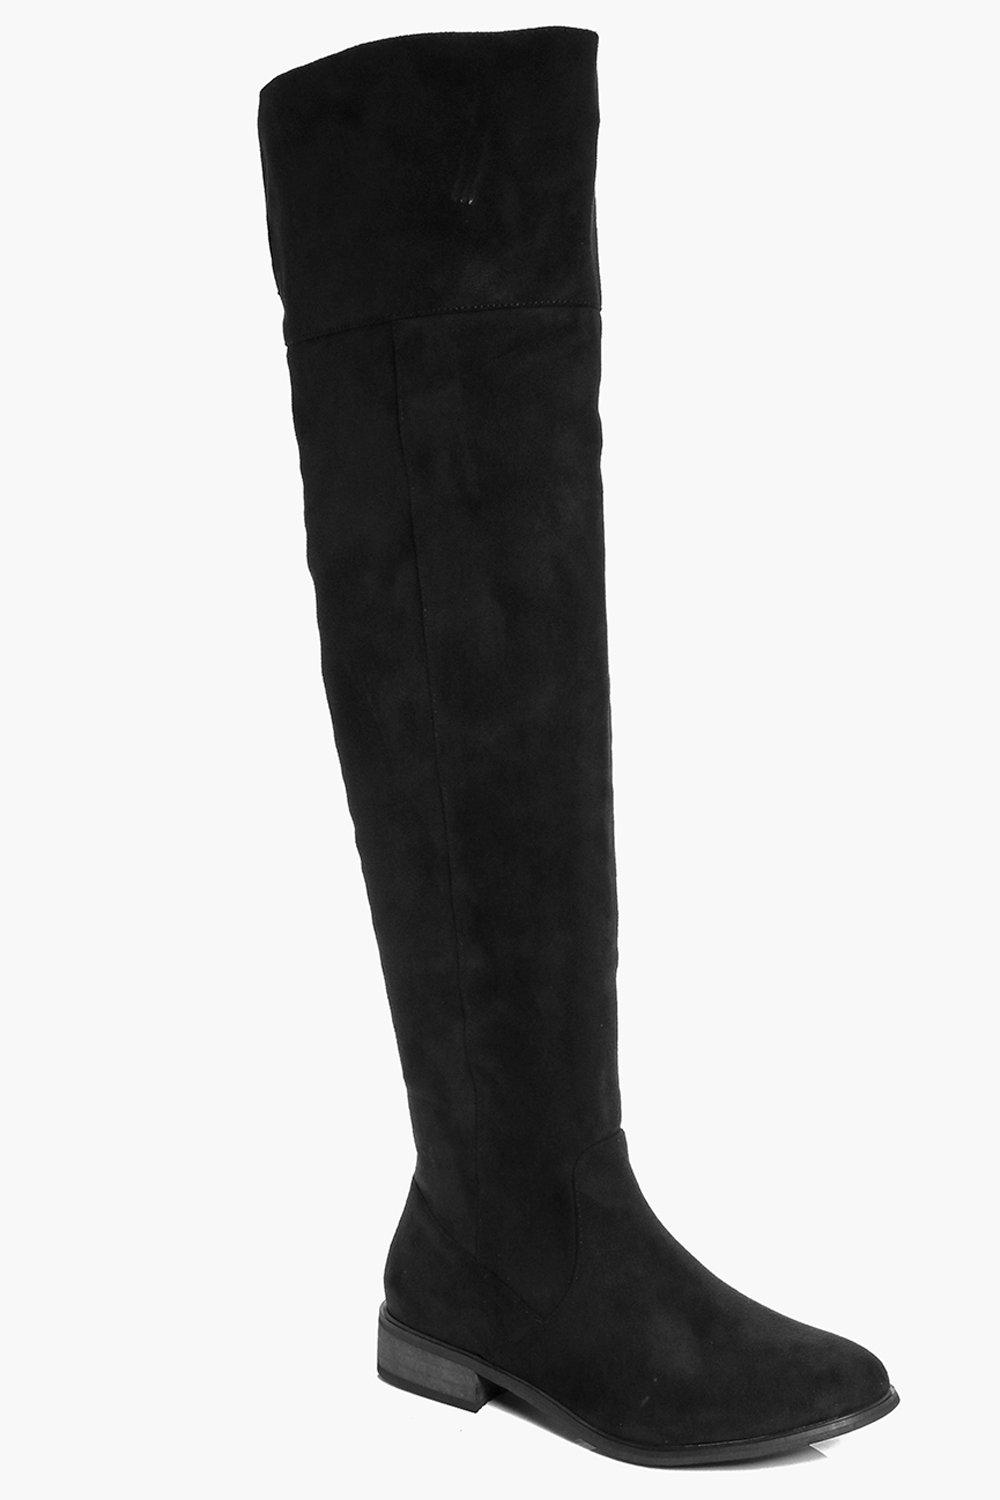 Annabelle Over The Knee Flat Boot